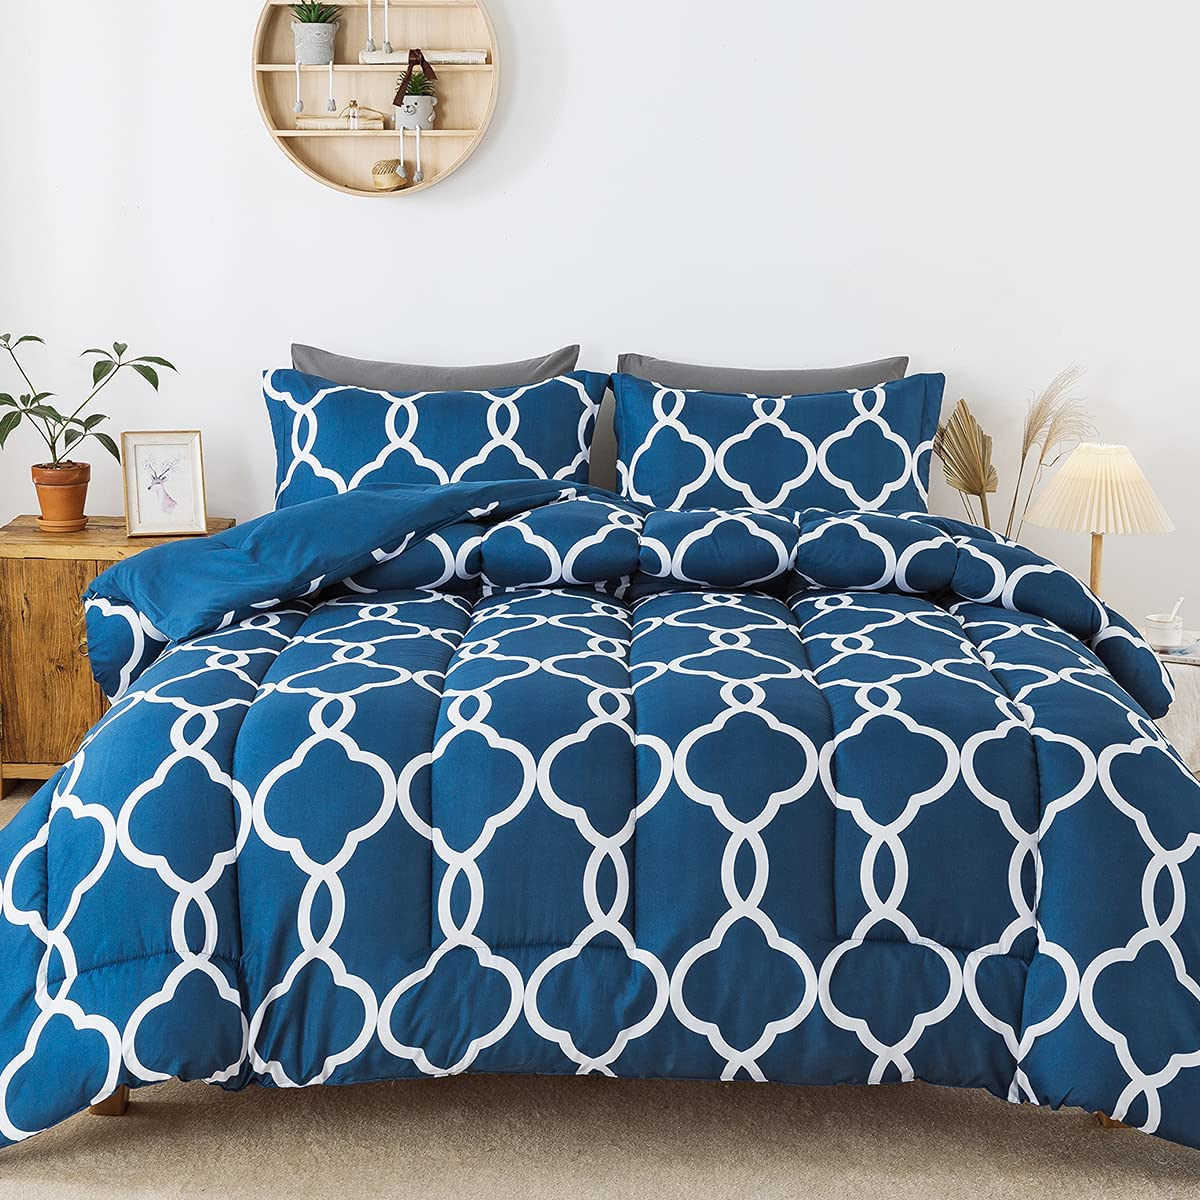 HYLEORY Printed Comforter Set Cheap sale Queen Size Shams Pillow Sale SALE% OFF R with - 2